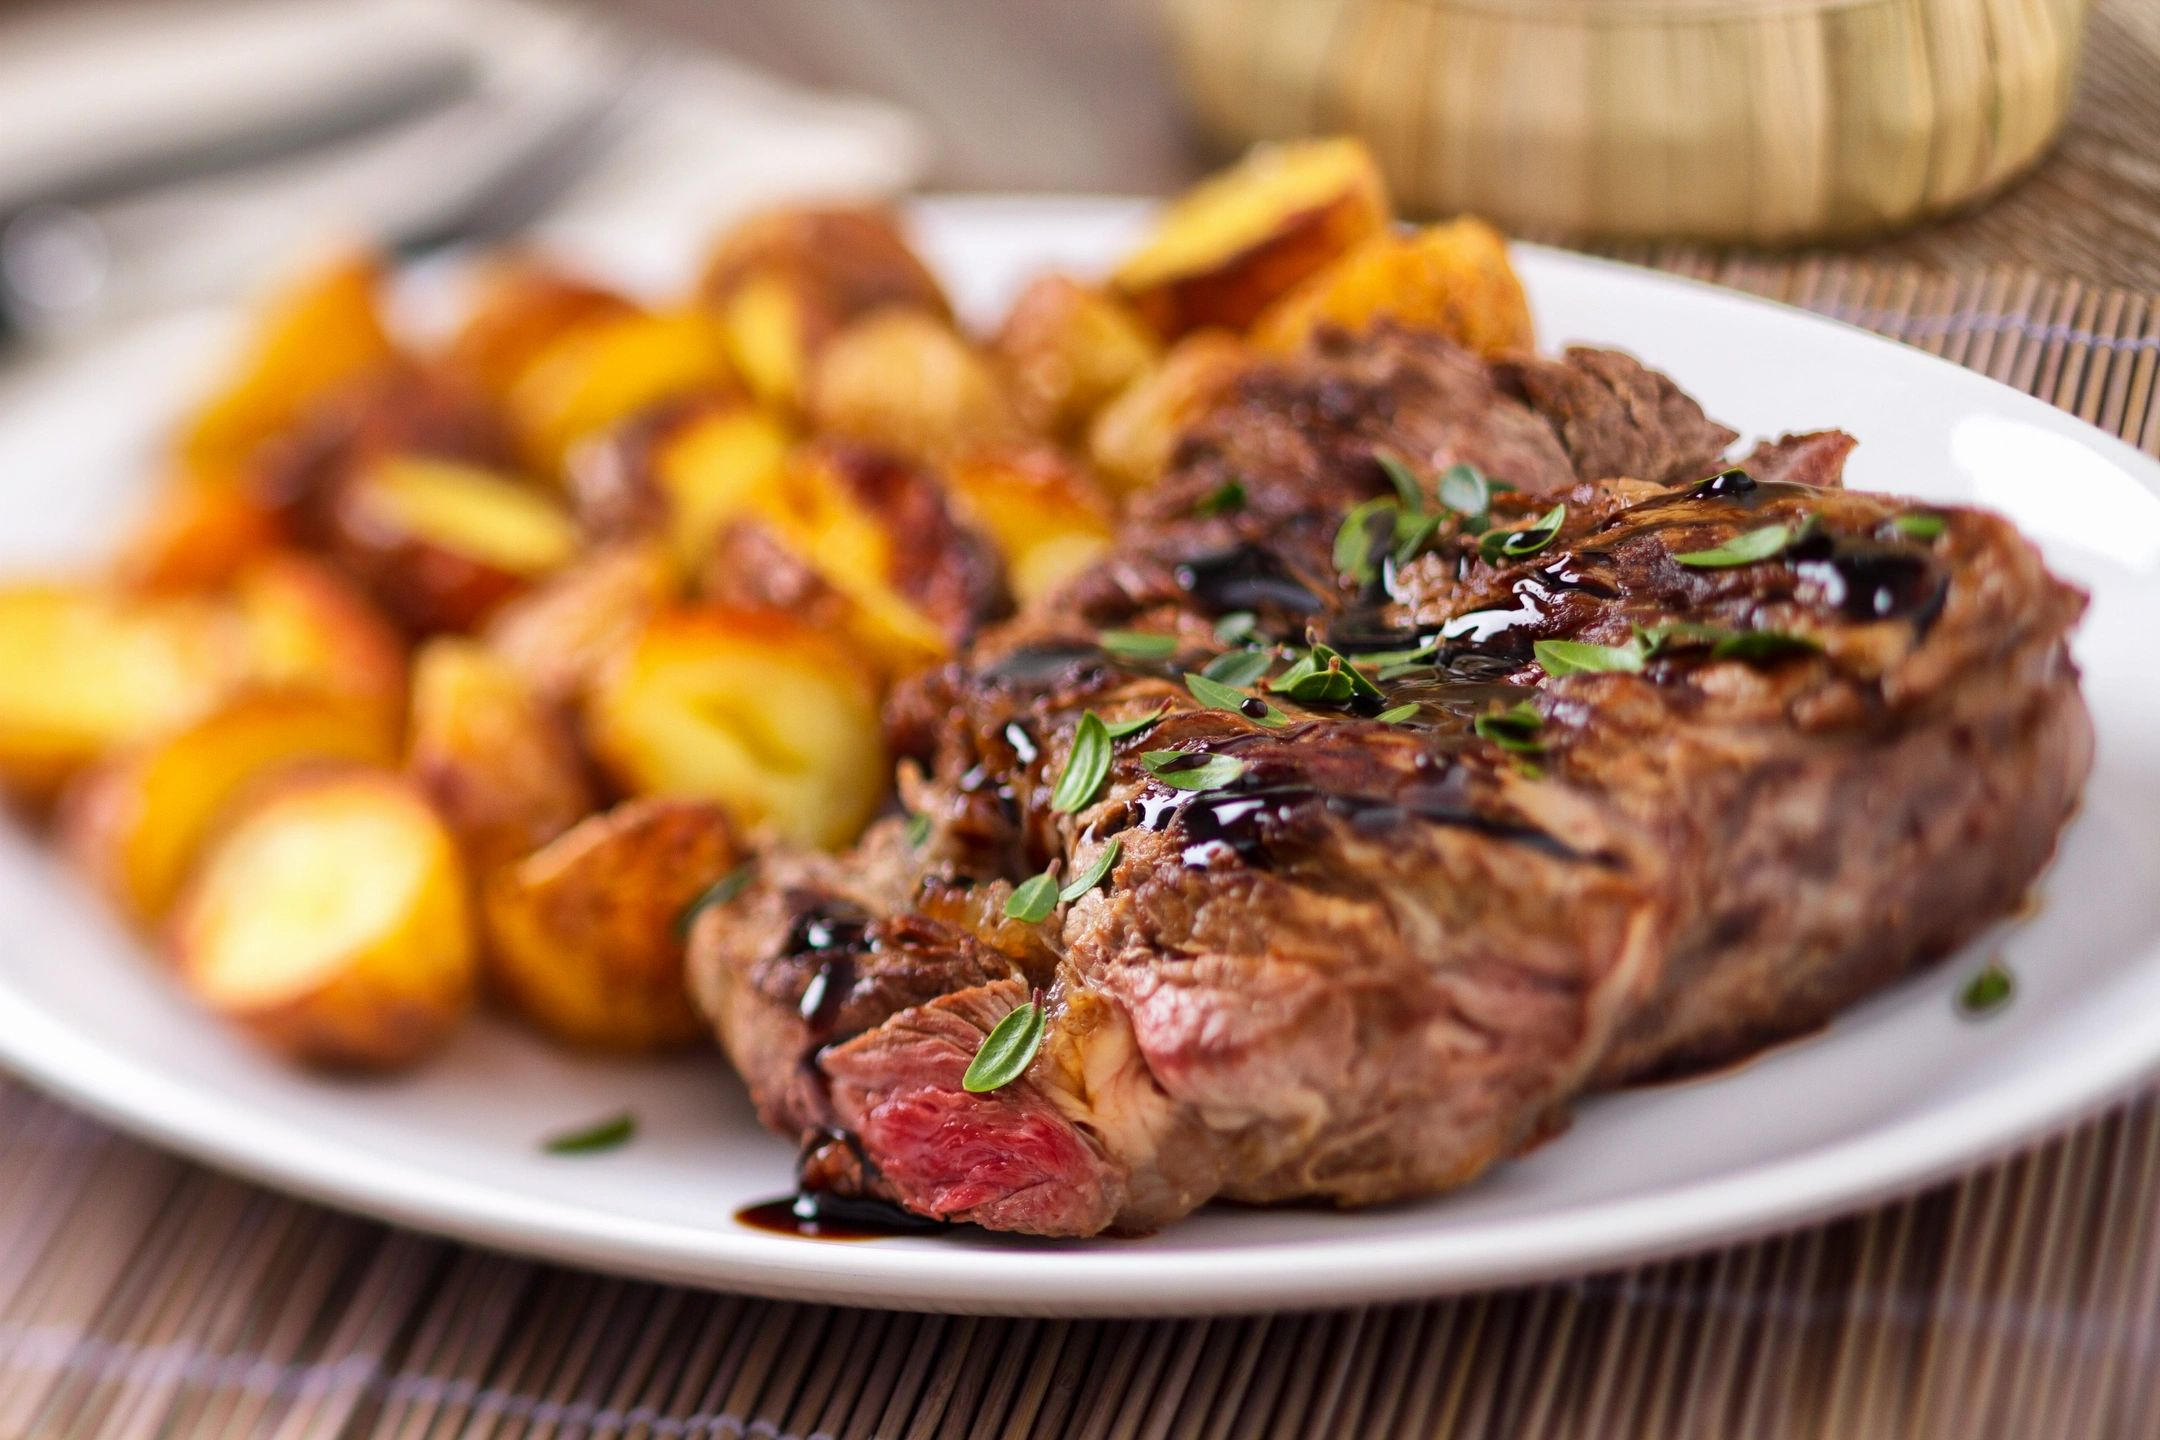 Dinner Catering: Ribeye steak and garlic butter potatoes.